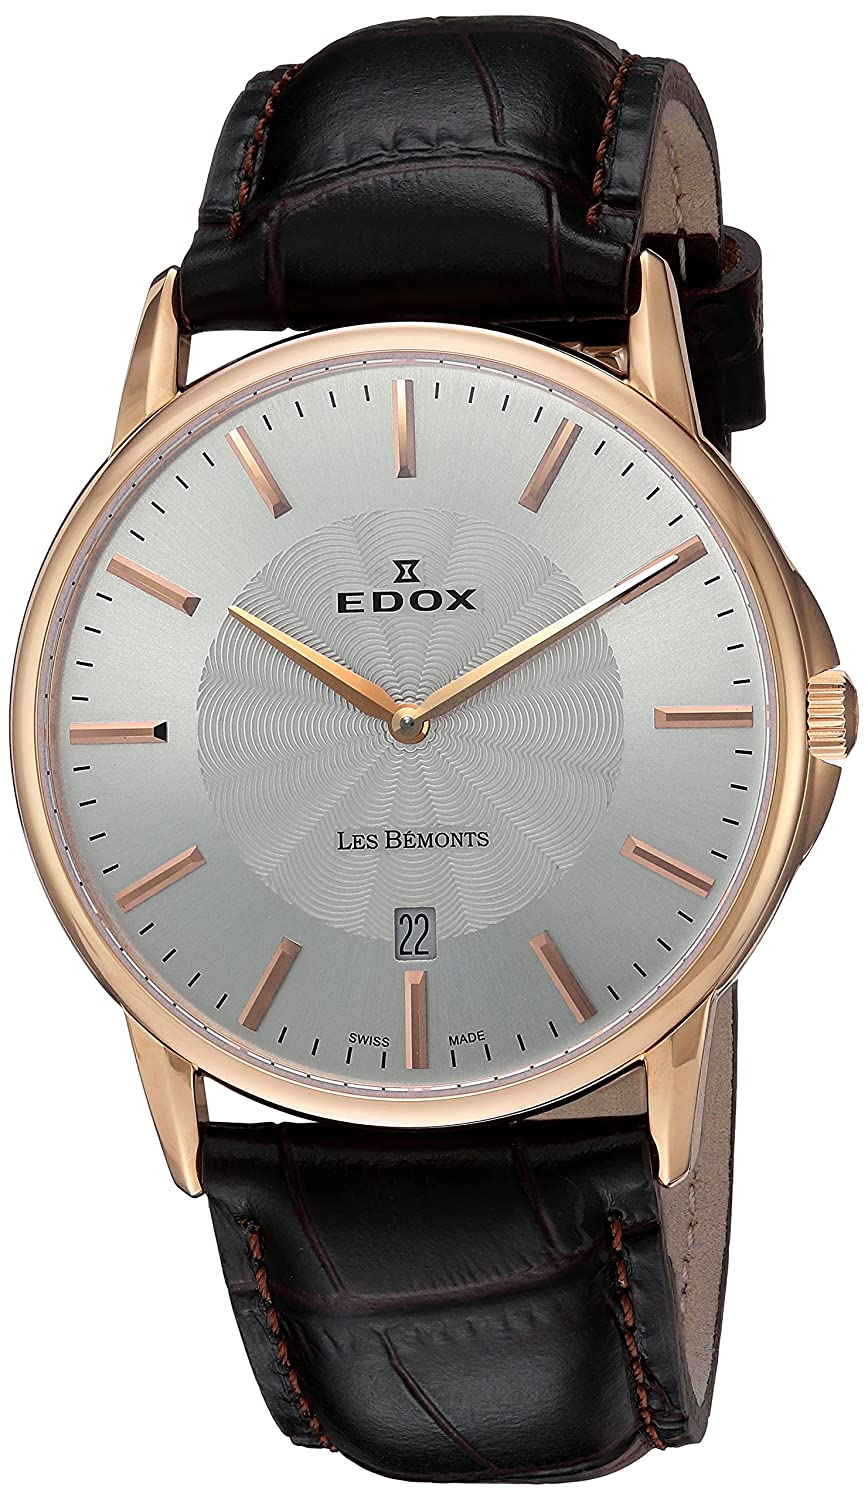 EDOX Unisex-Armbanduhr EDOX LES BÈMONTS SLIMM MOVEMENT Analog Quarz Leder 56001 37R AIR